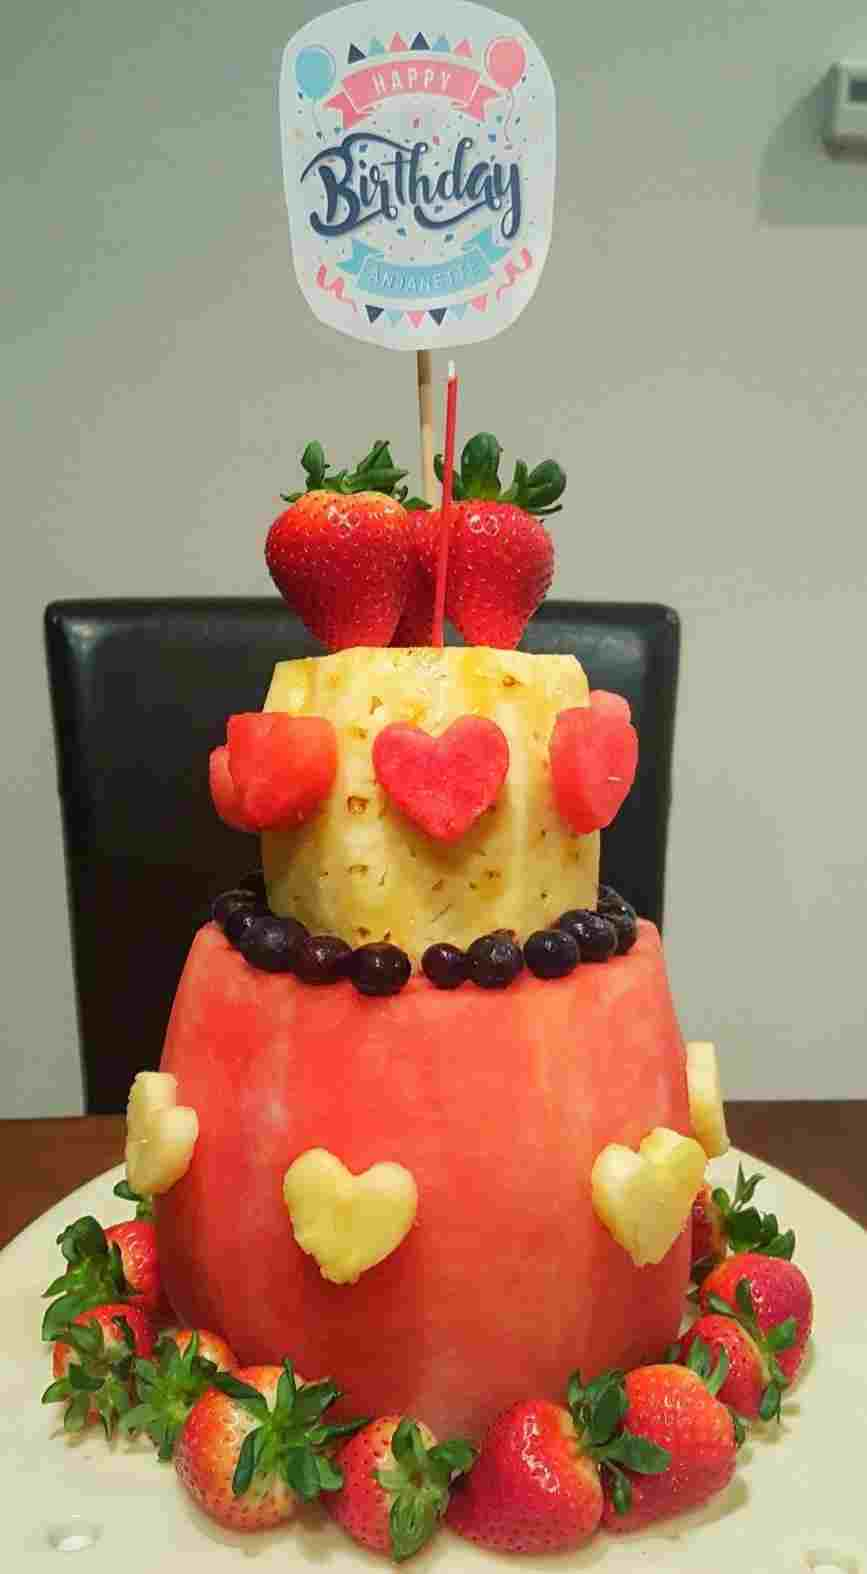 Birthday Cake Alternatives Rhpinterestcom Imagesrhlive Imagesrhlive Healthy Birthday Cake